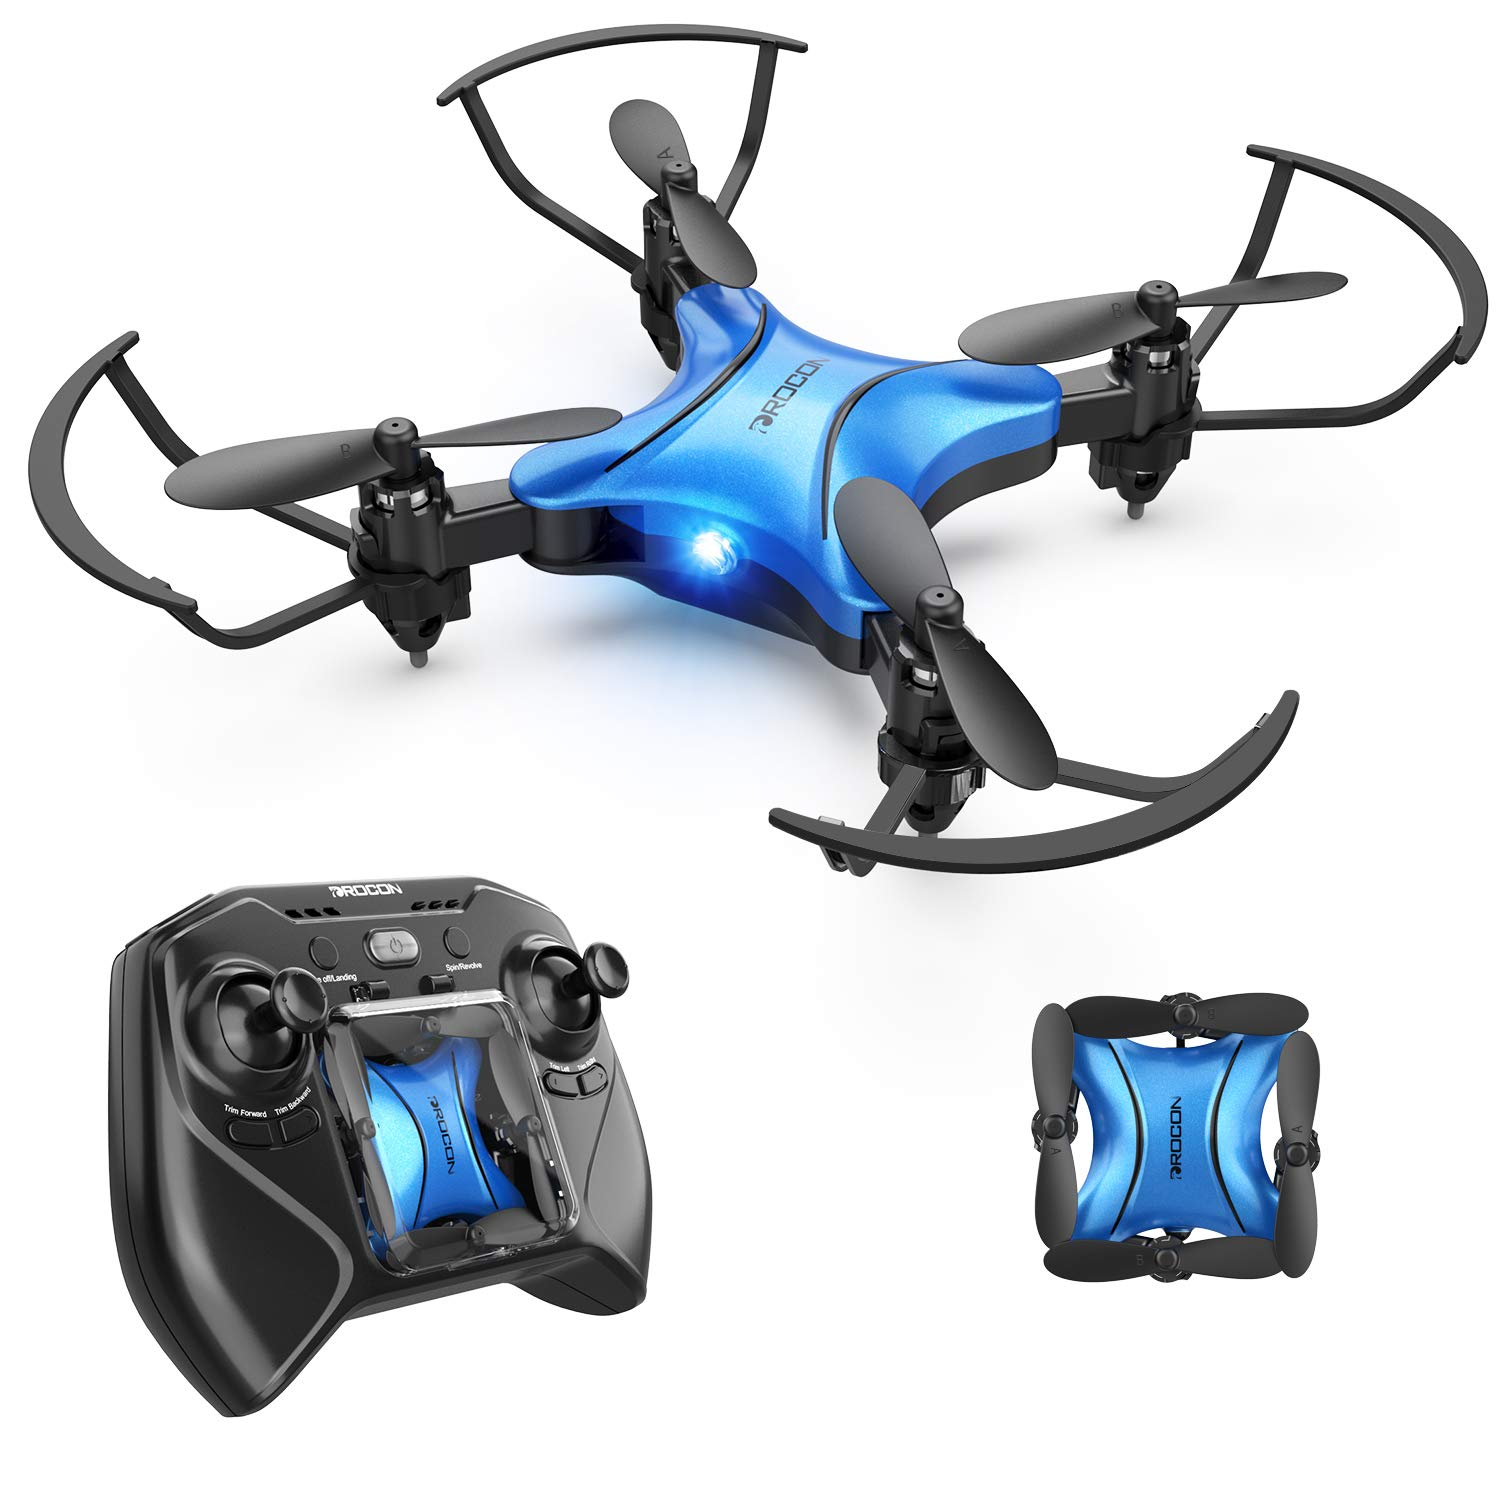 DROCON DC-65 Foldable Mini Drone for Kids, Beginner RC Quadcopter with Altitude Hold/3D Flips/Self-Rotating/Headless Mode/One-Key Take-Off & Landing/One-Key Return/Speed Adjustment (Blue) by DROCON